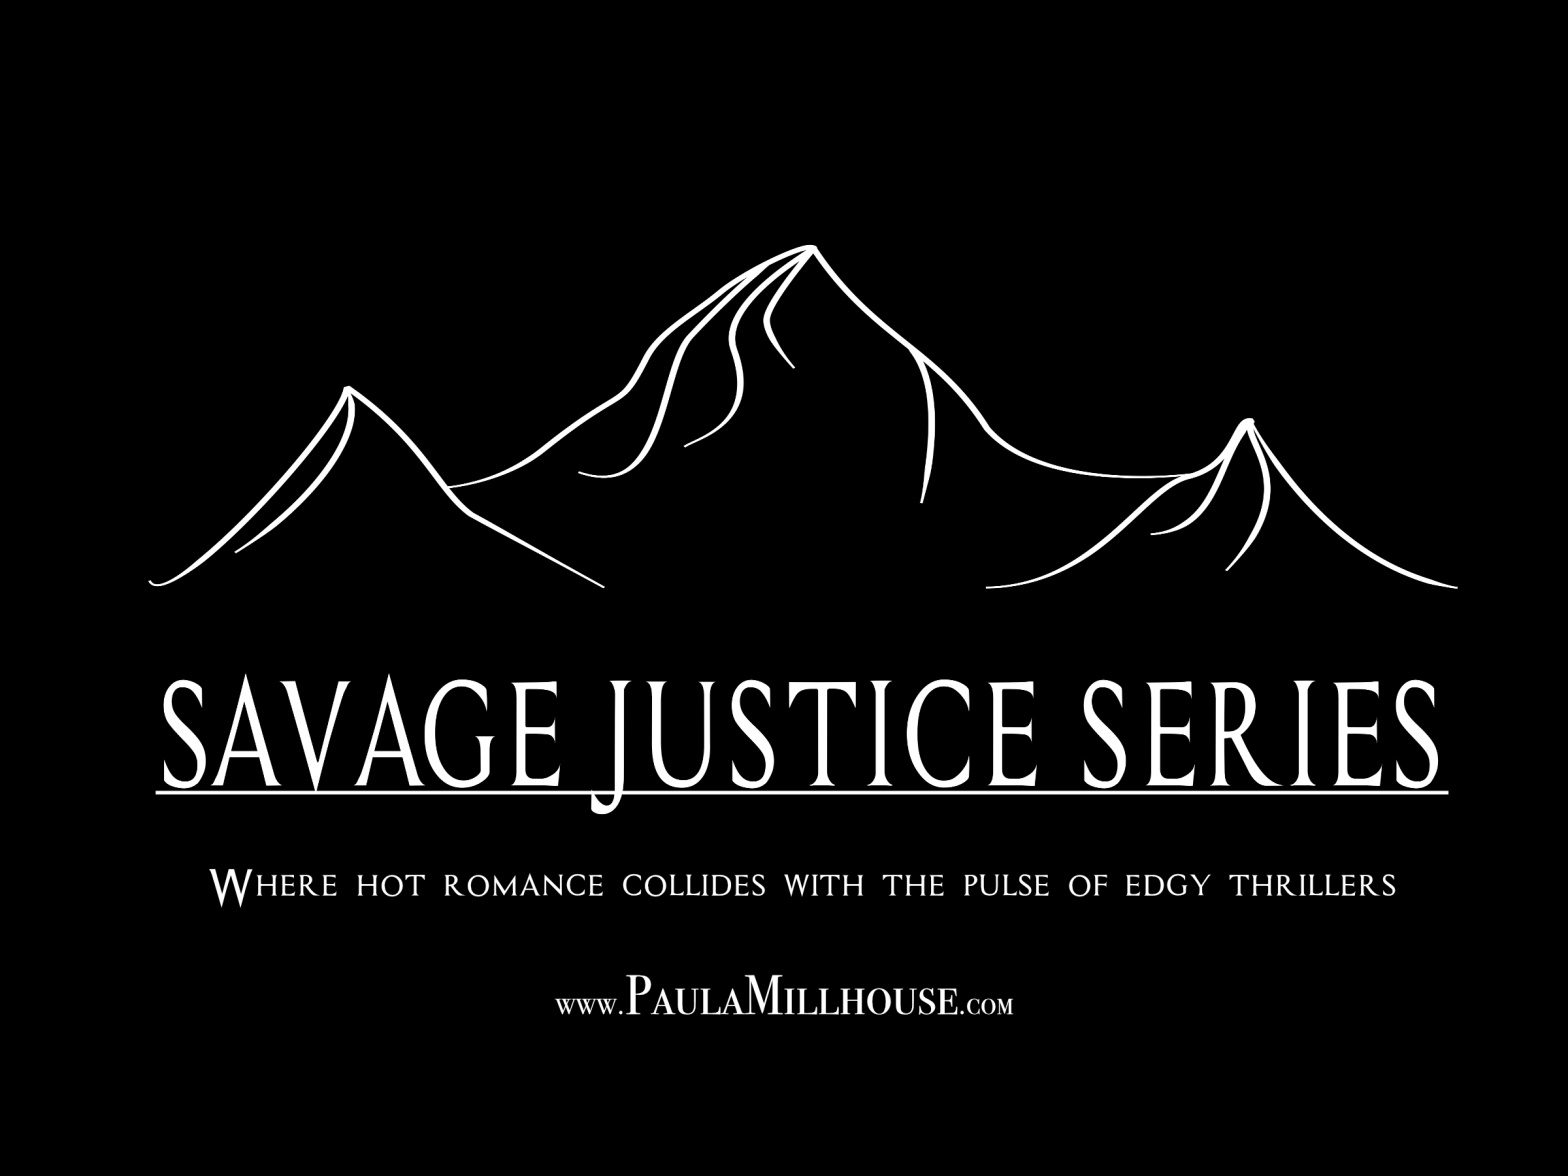 Author Paula Millhouse, Savage Justice Series, Hot Romance, Edgy Thrillers, The Girl Who Got Away, The Copycat Killers, Manhattan After Dark, Romantic Suspense Series, True Love, Crime fiction, Mystery & Suspense, Suspense, Thrillers, Romance